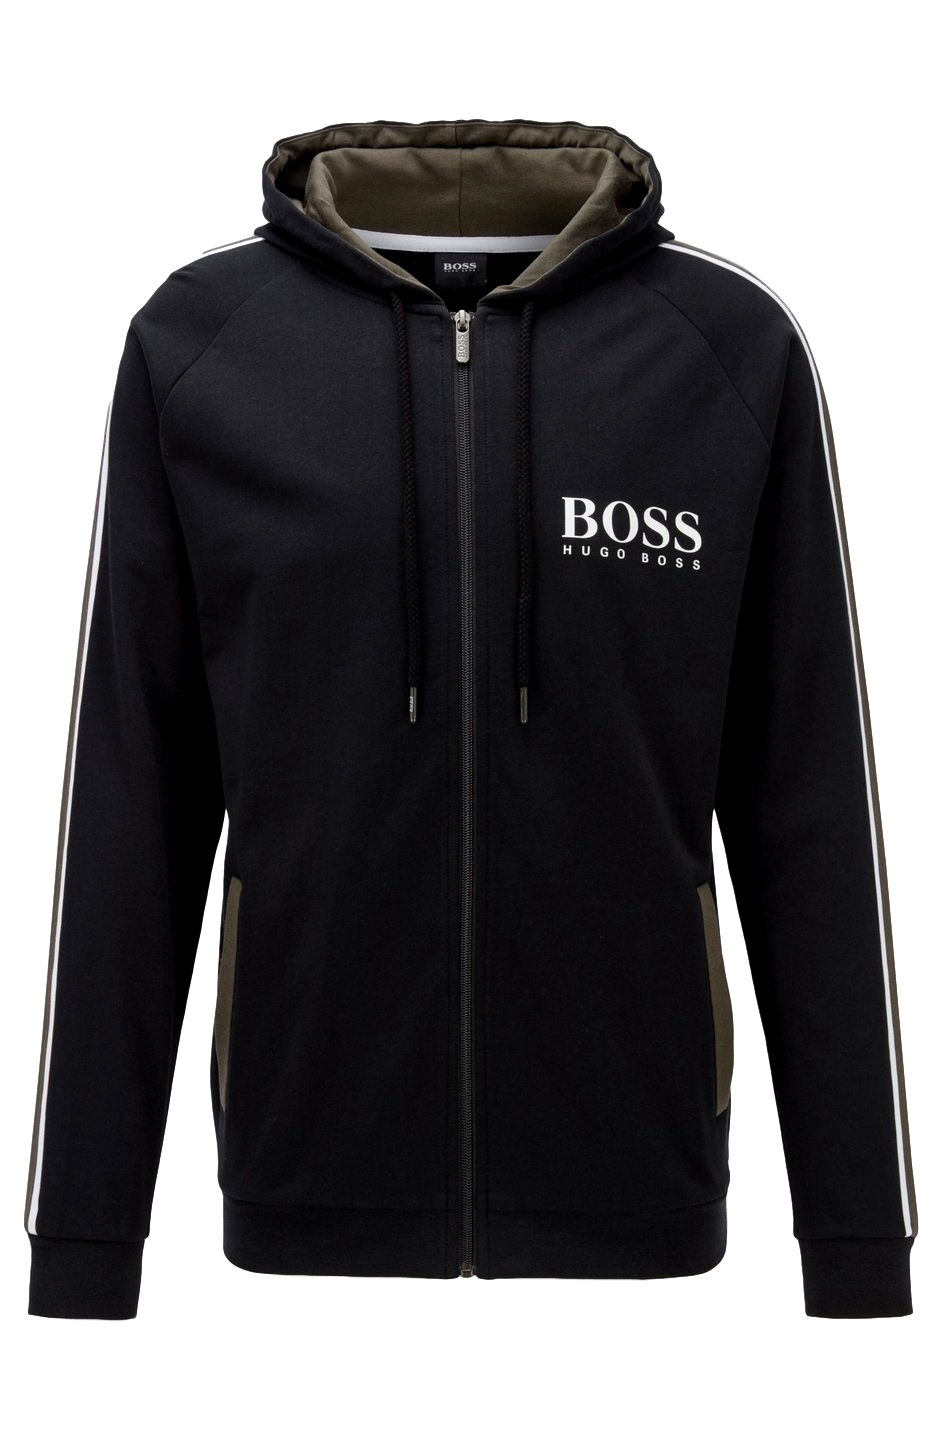 HUGO BOSS Felpa french terry con cappuccio Modello Authentic Jacket H - 50424806